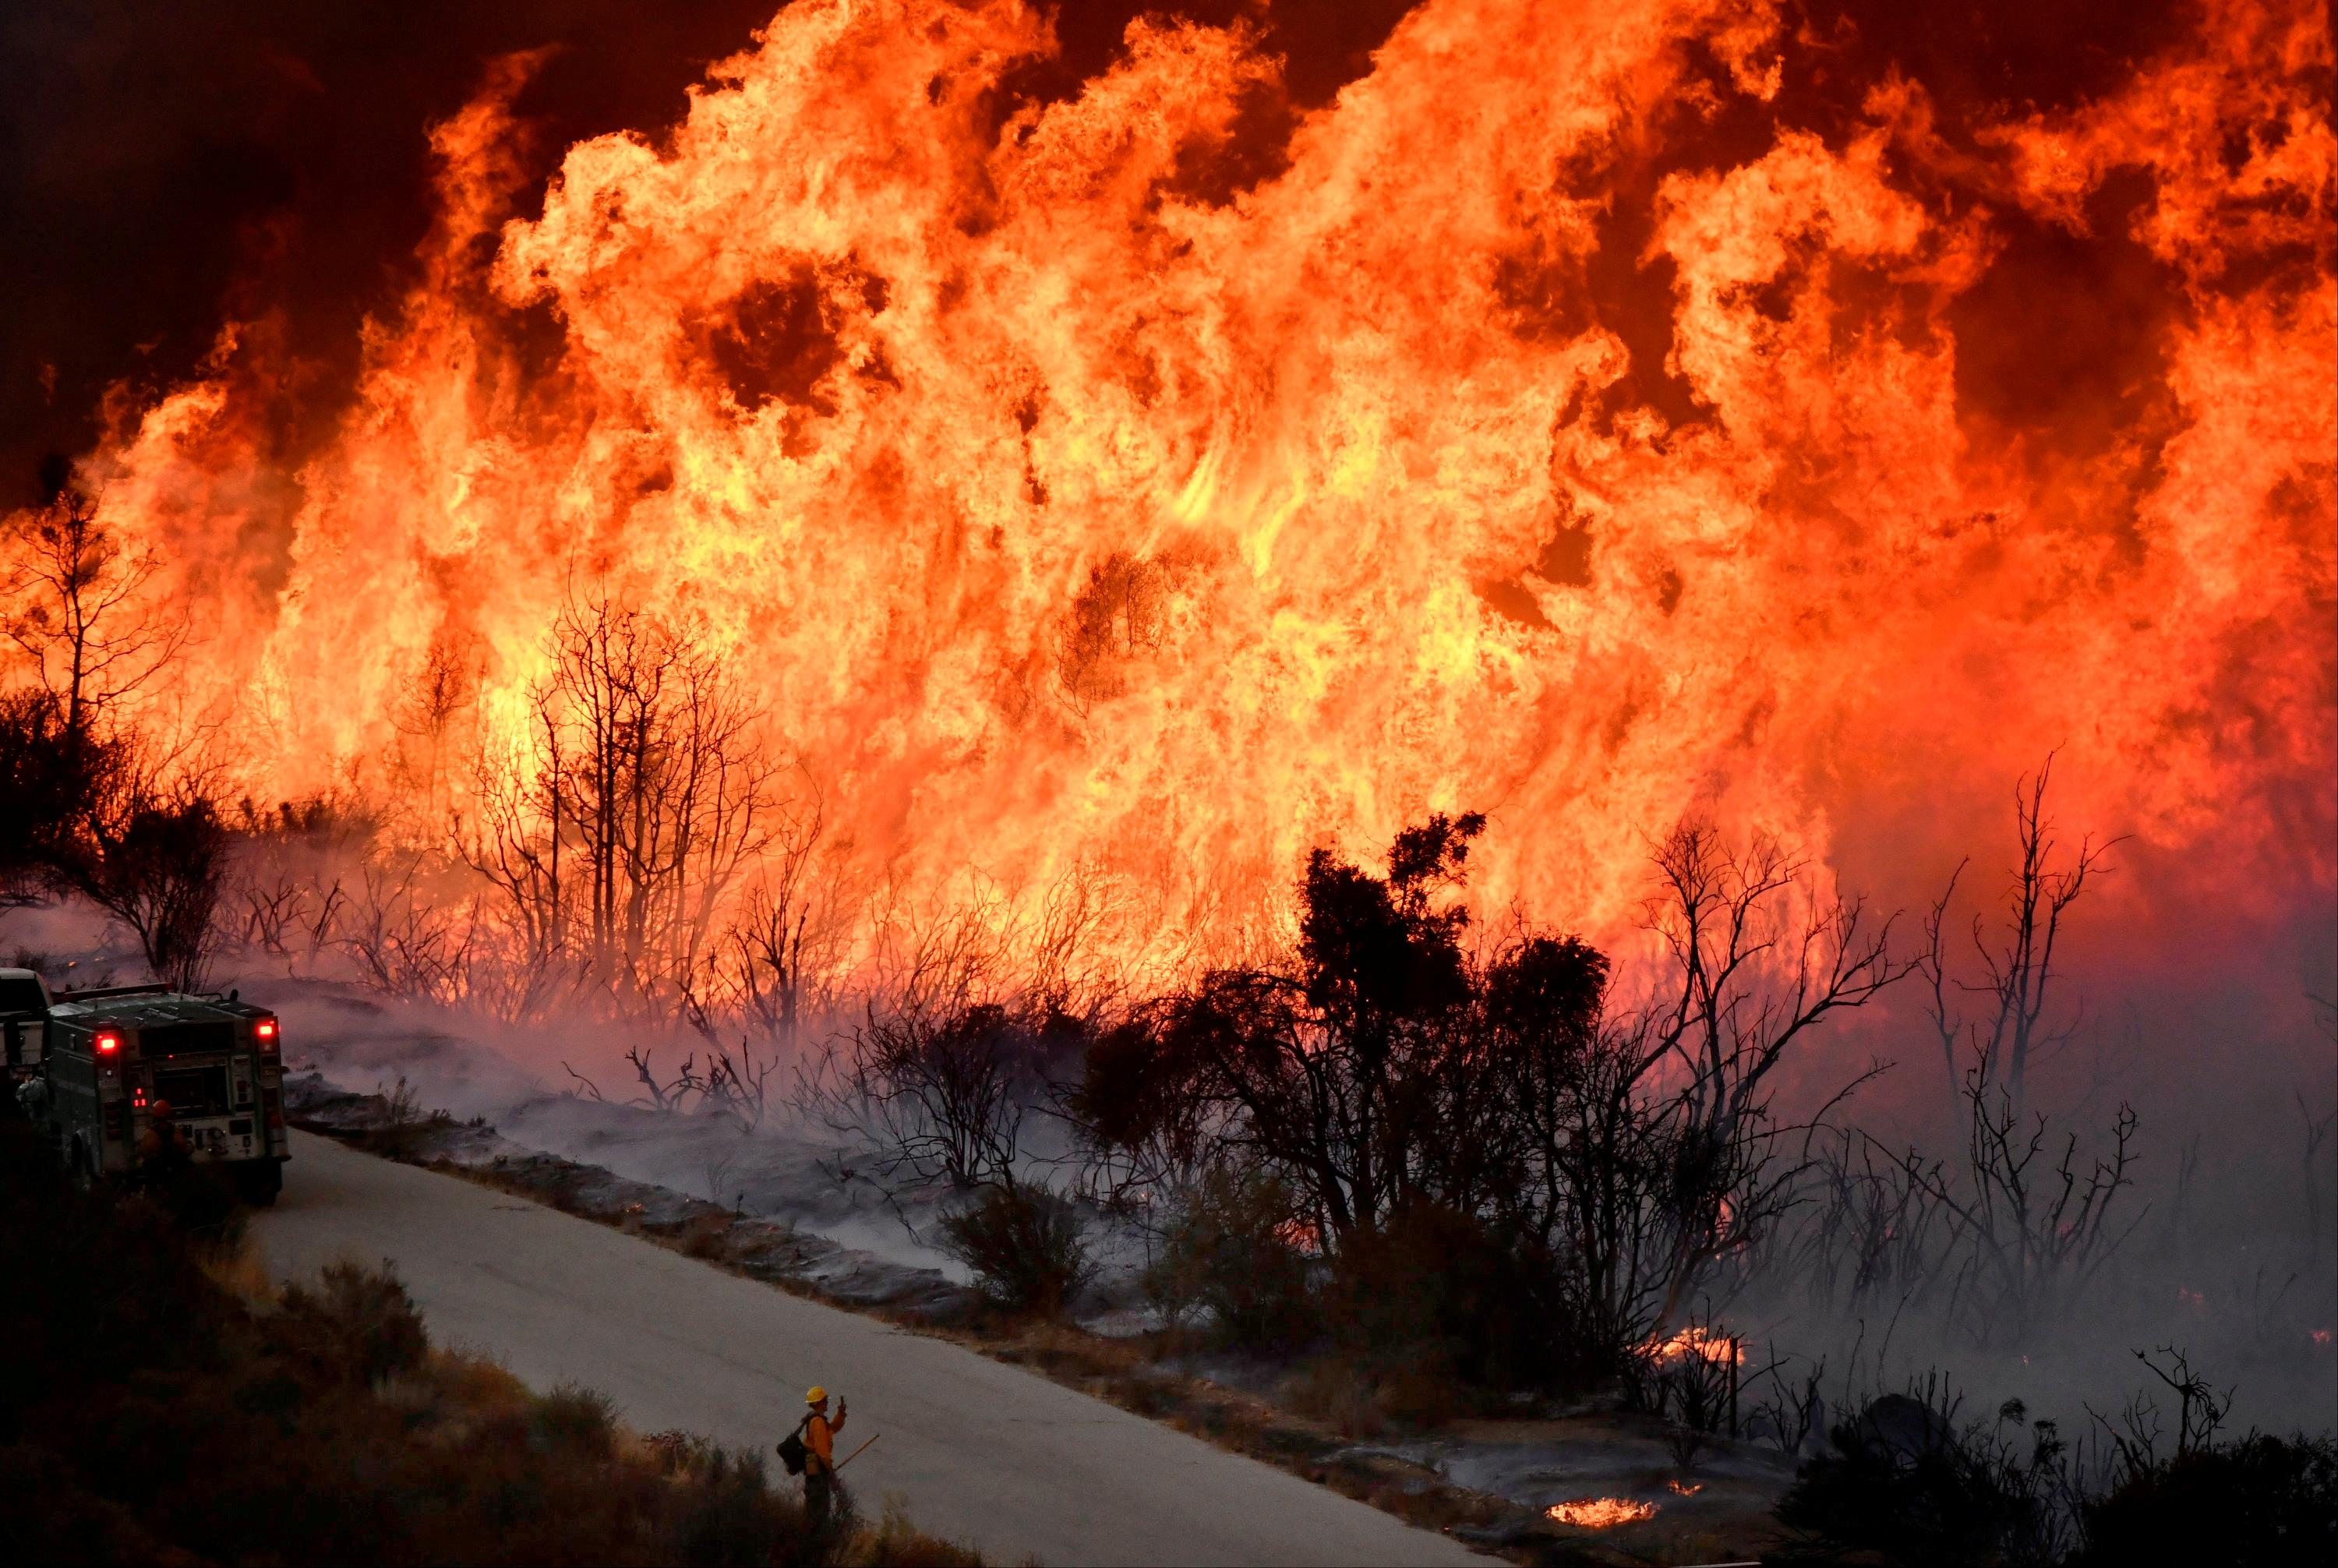 Goleta Devastated by Brush Fire as Record Heat Burns Path of Destruction